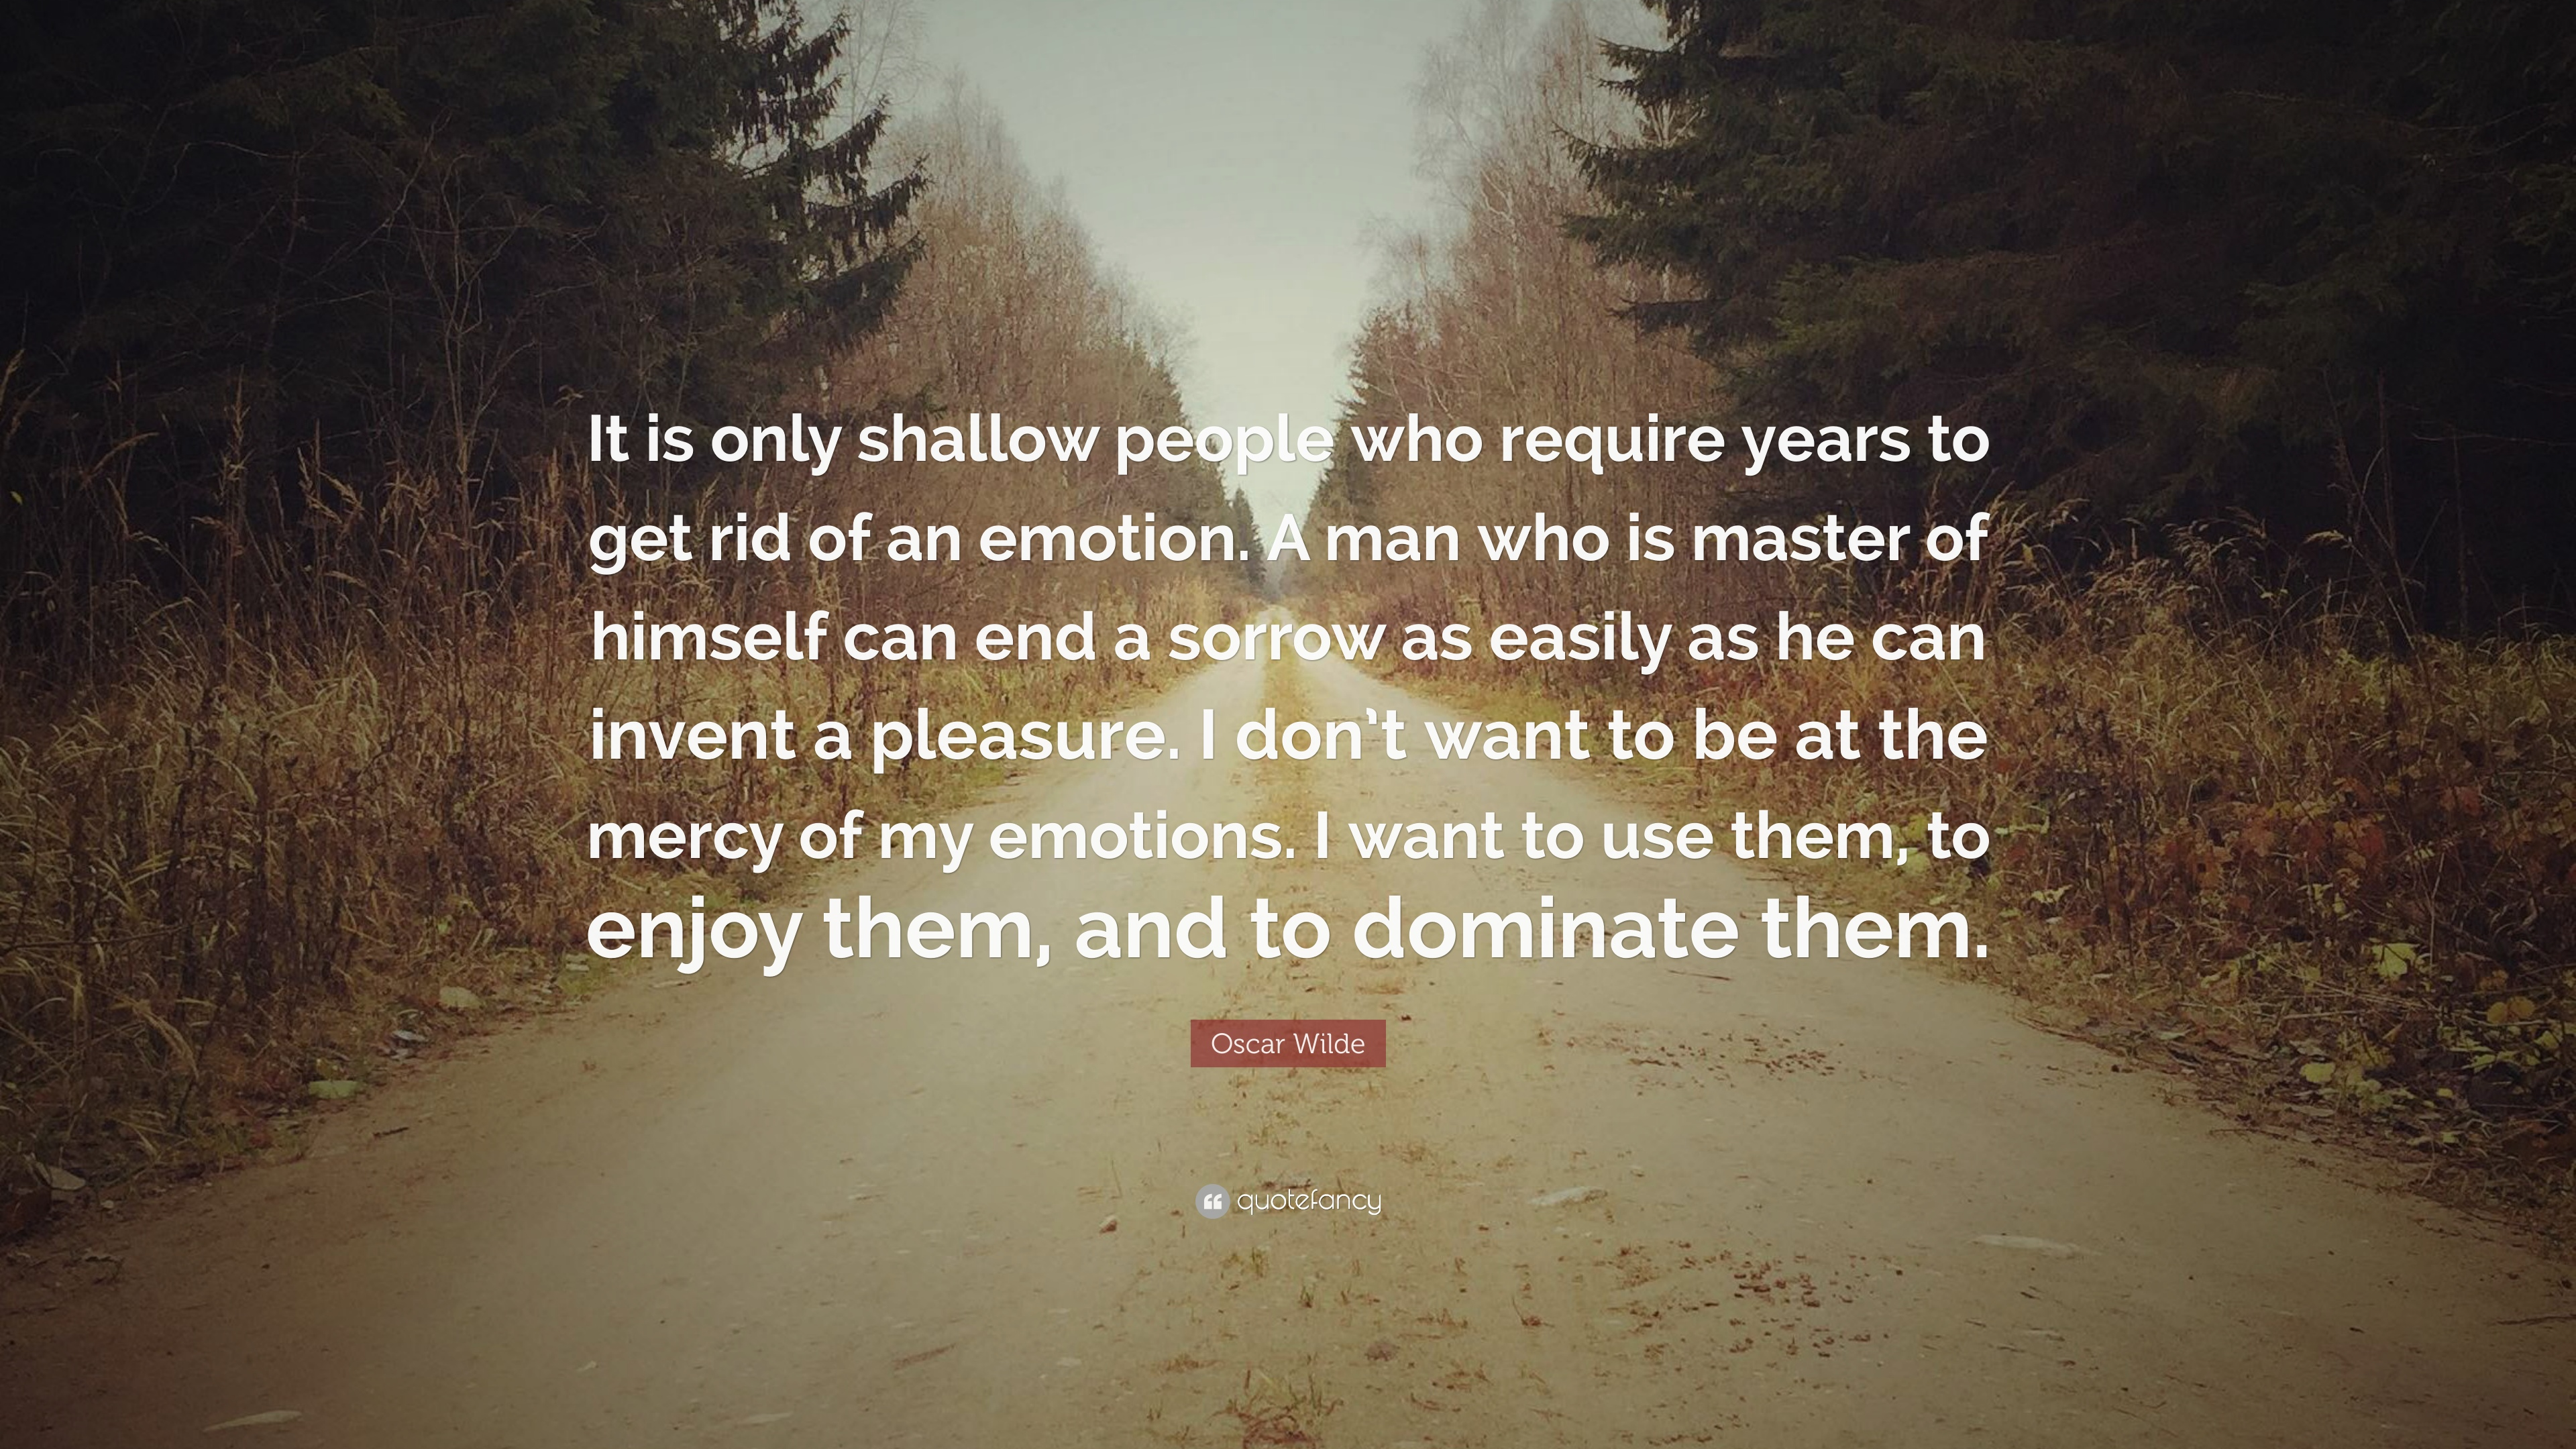 oscar wilde quote   u201cit is only shallow people who require